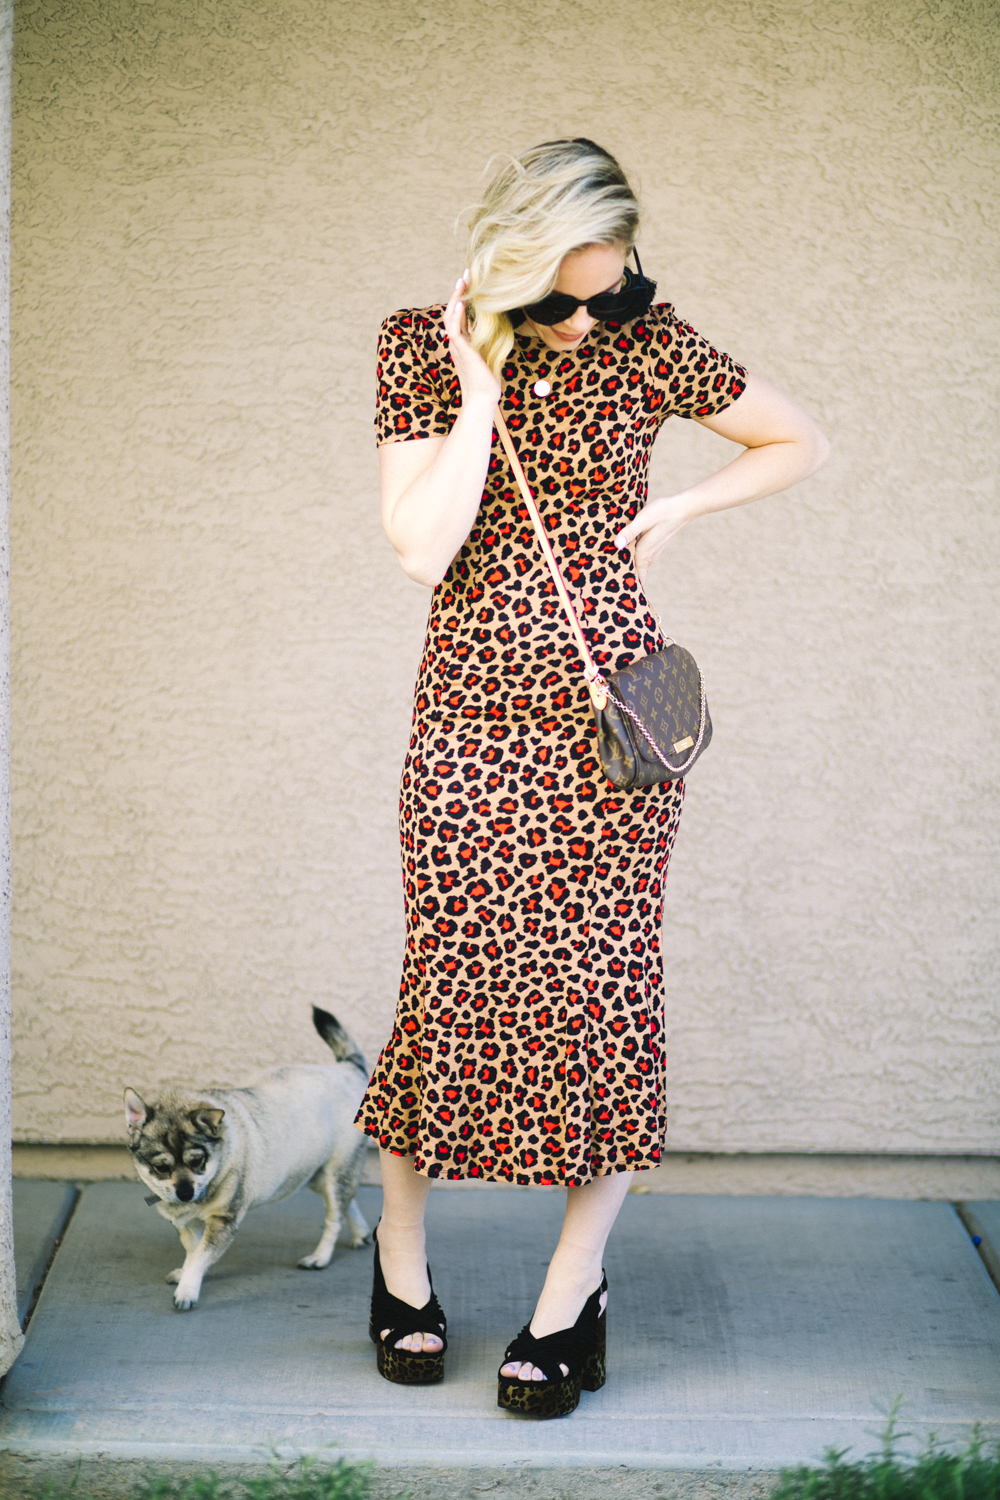 Cheetah print favorites featured by top US fashion blog, Life of a Sister: image of a woman wearing a cheetah print maxi dress